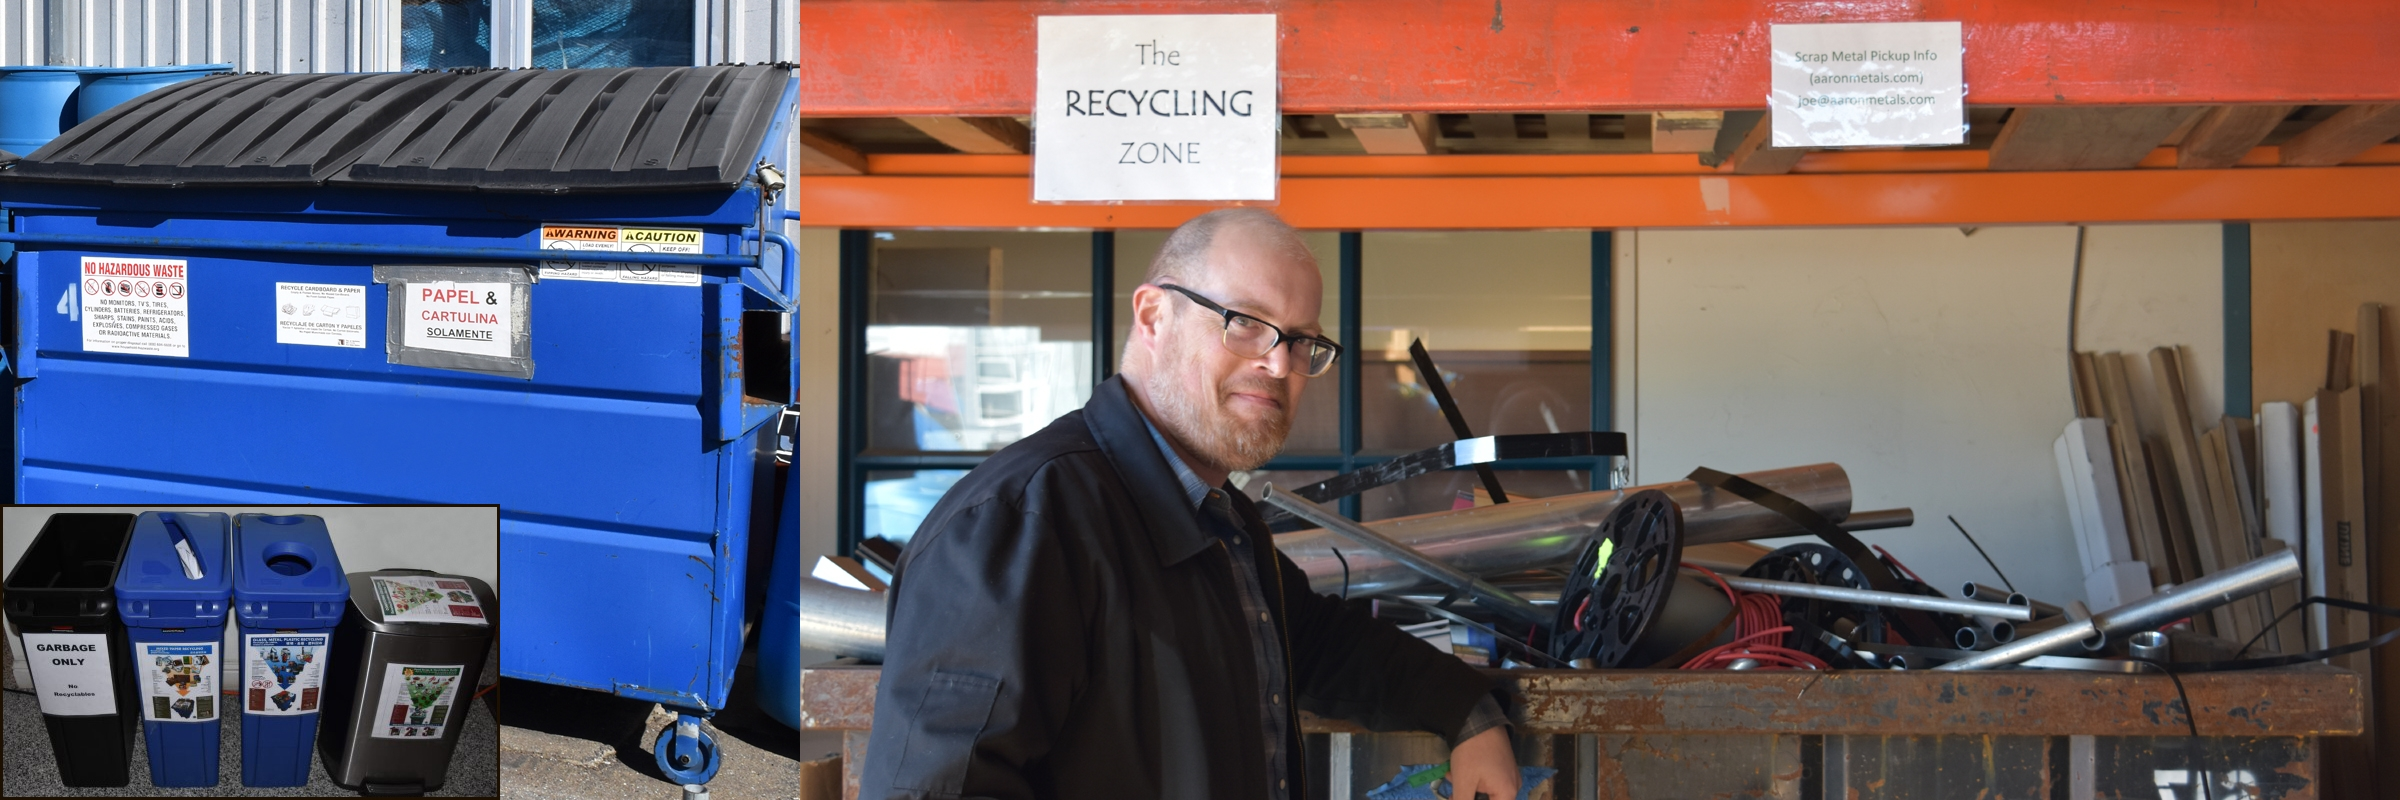 Recycling Green Business Solar